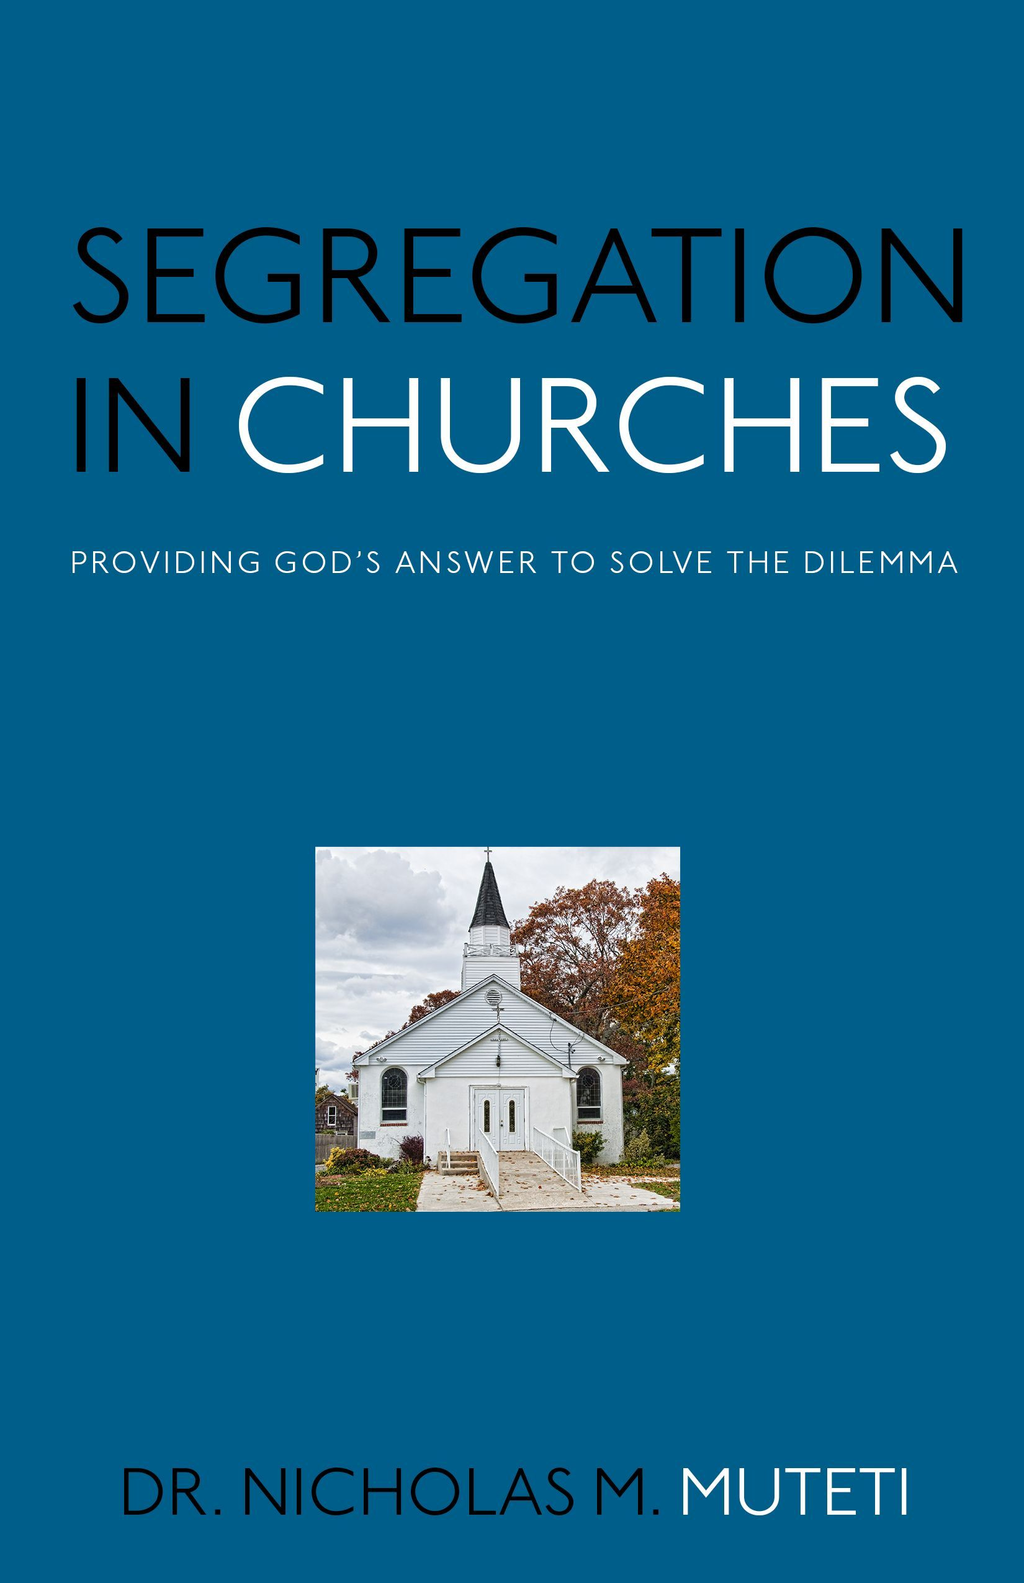 Segregation in Churches